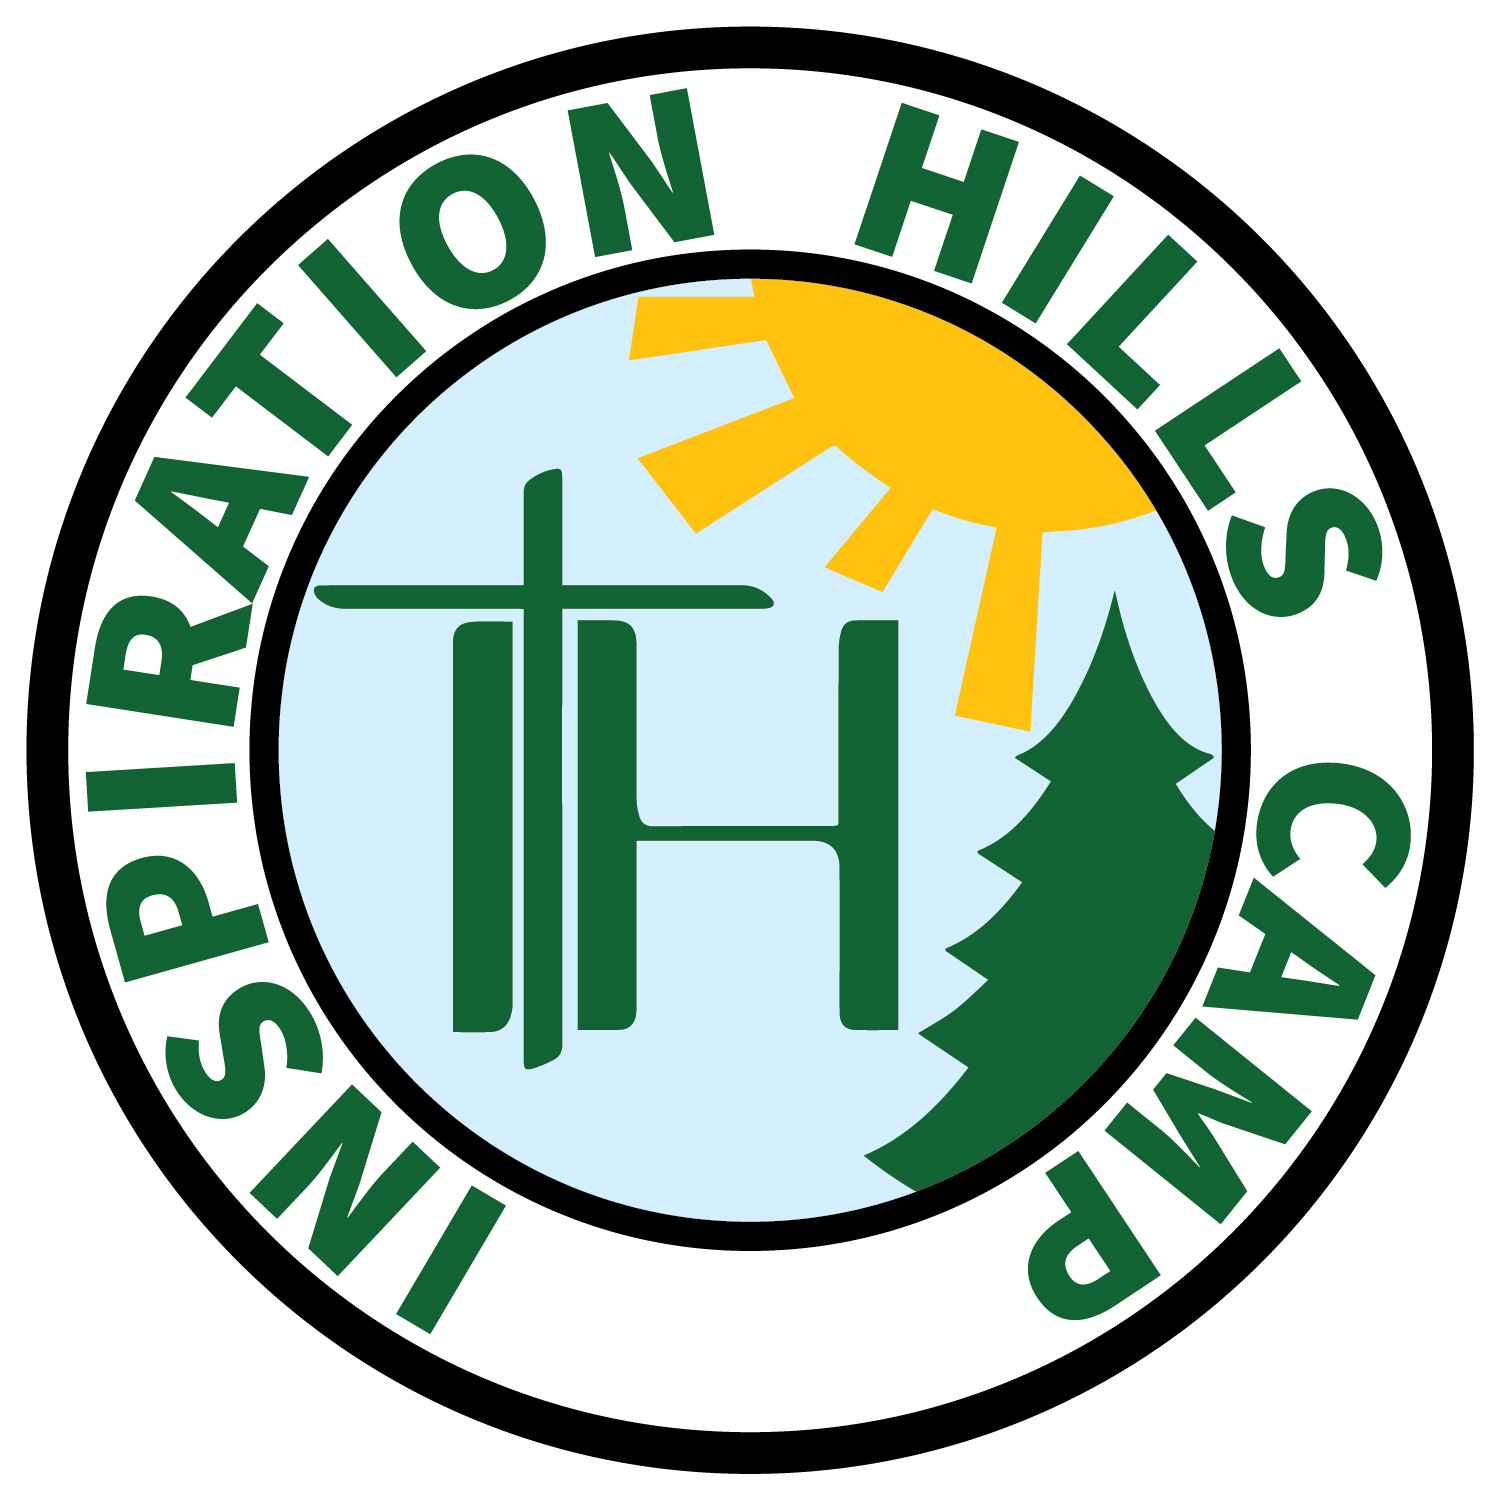 What's Happening at Camp Inspiration Hills